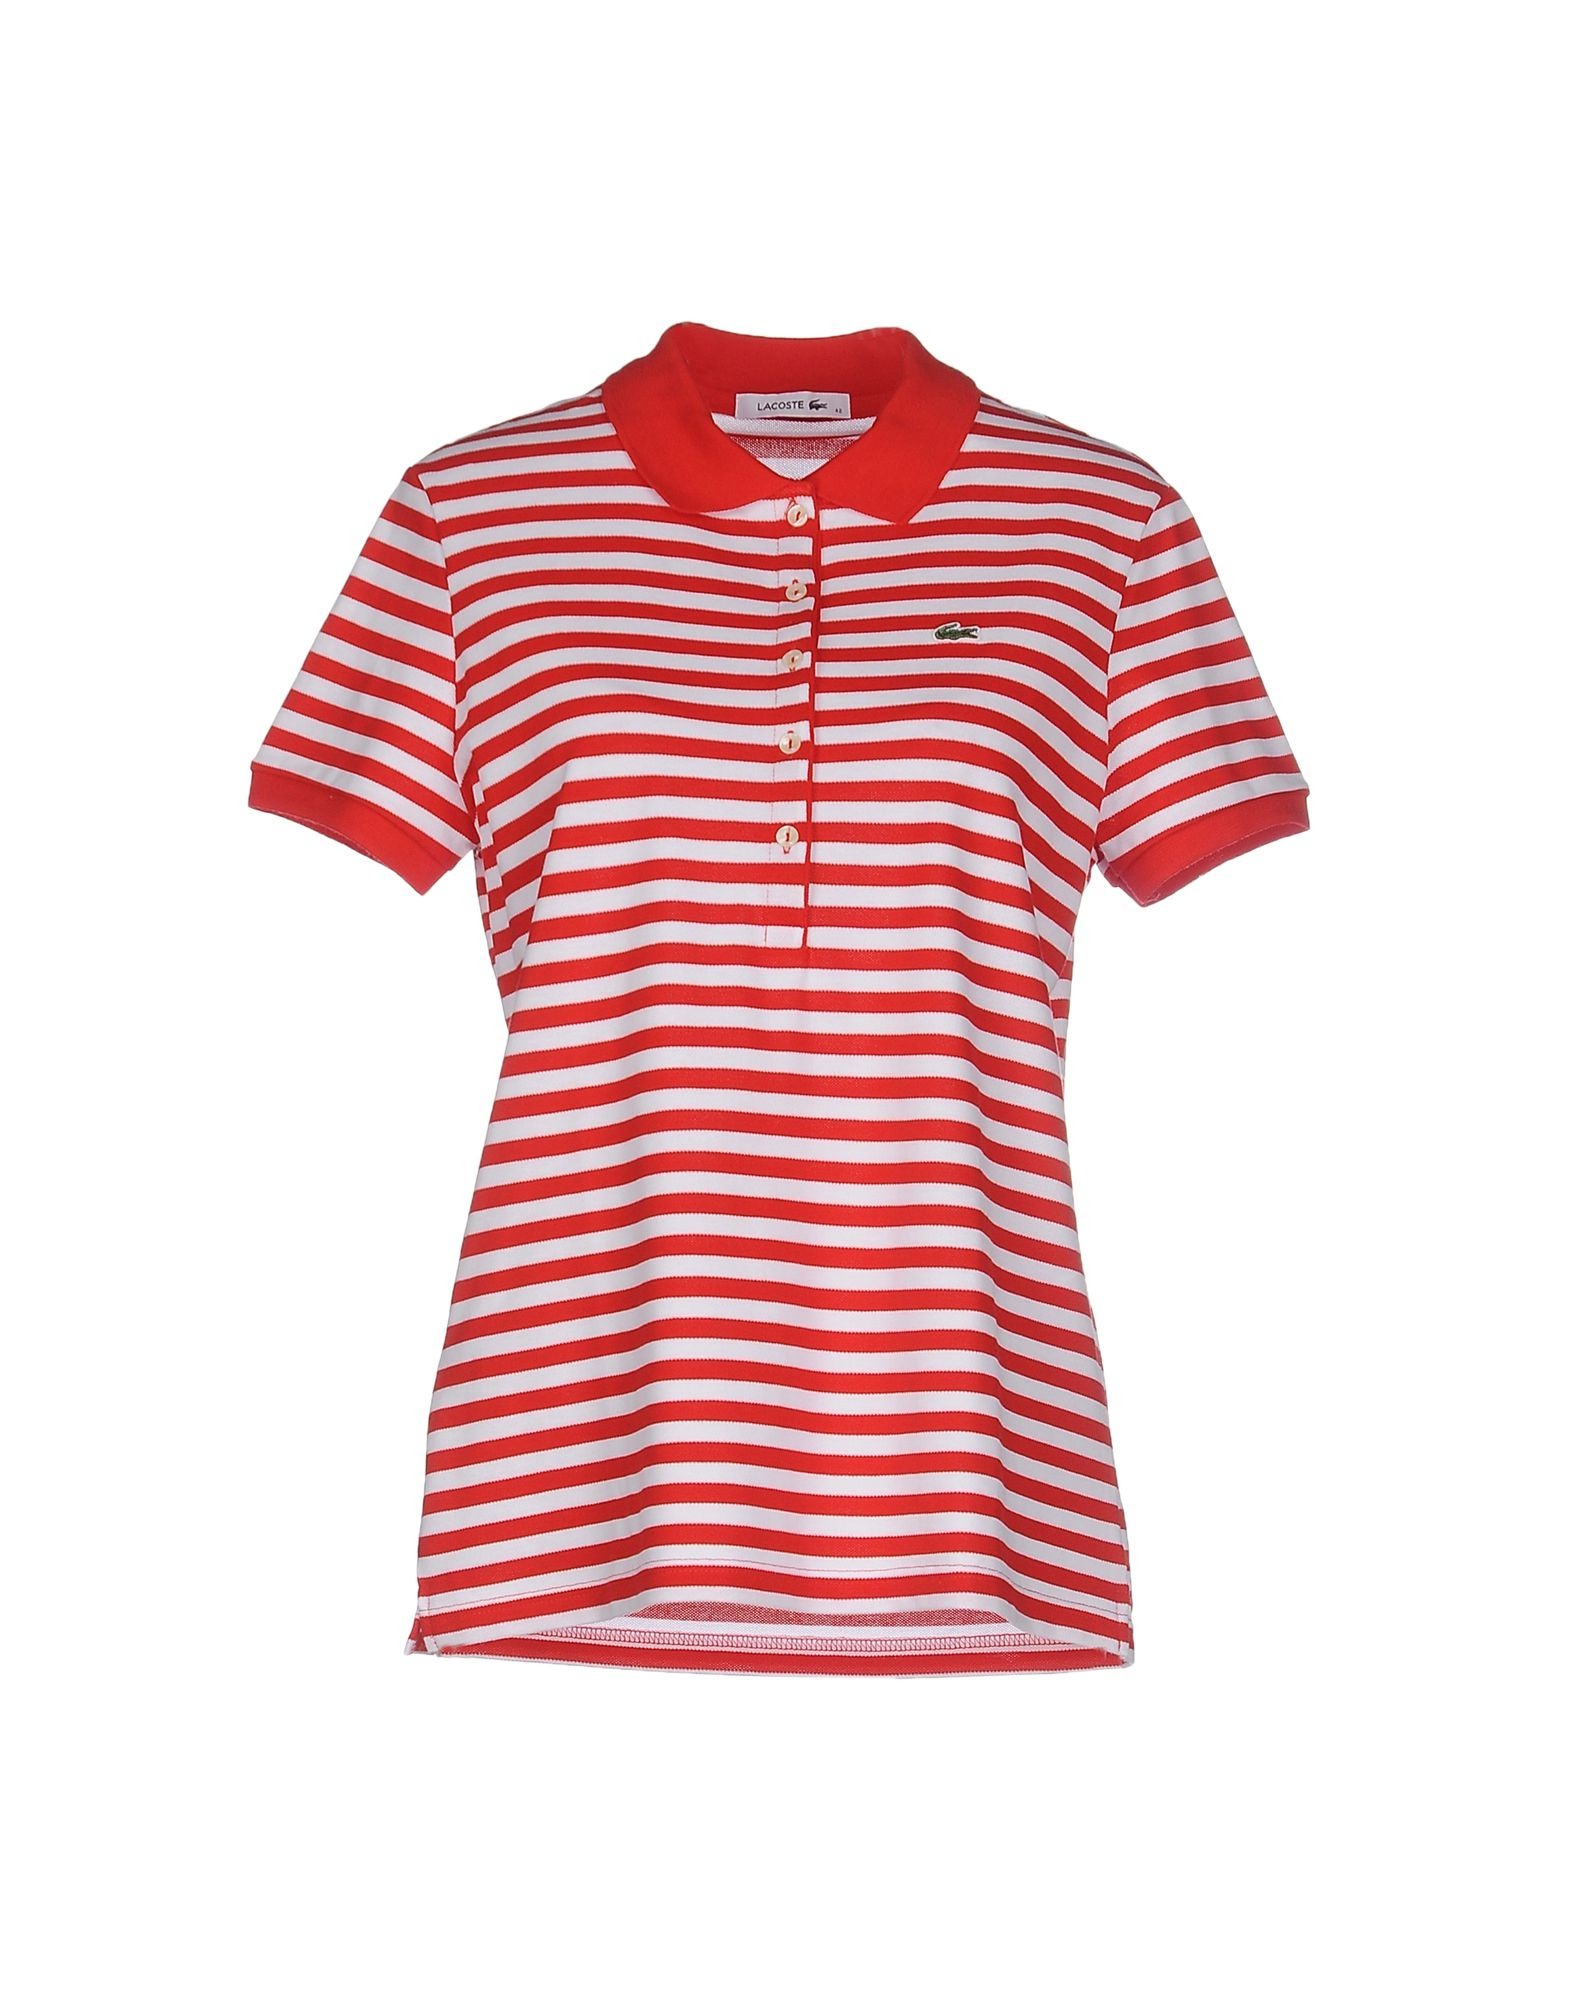 Lacoste polo shirt in red lyst for Lacoste poloshirt weiay